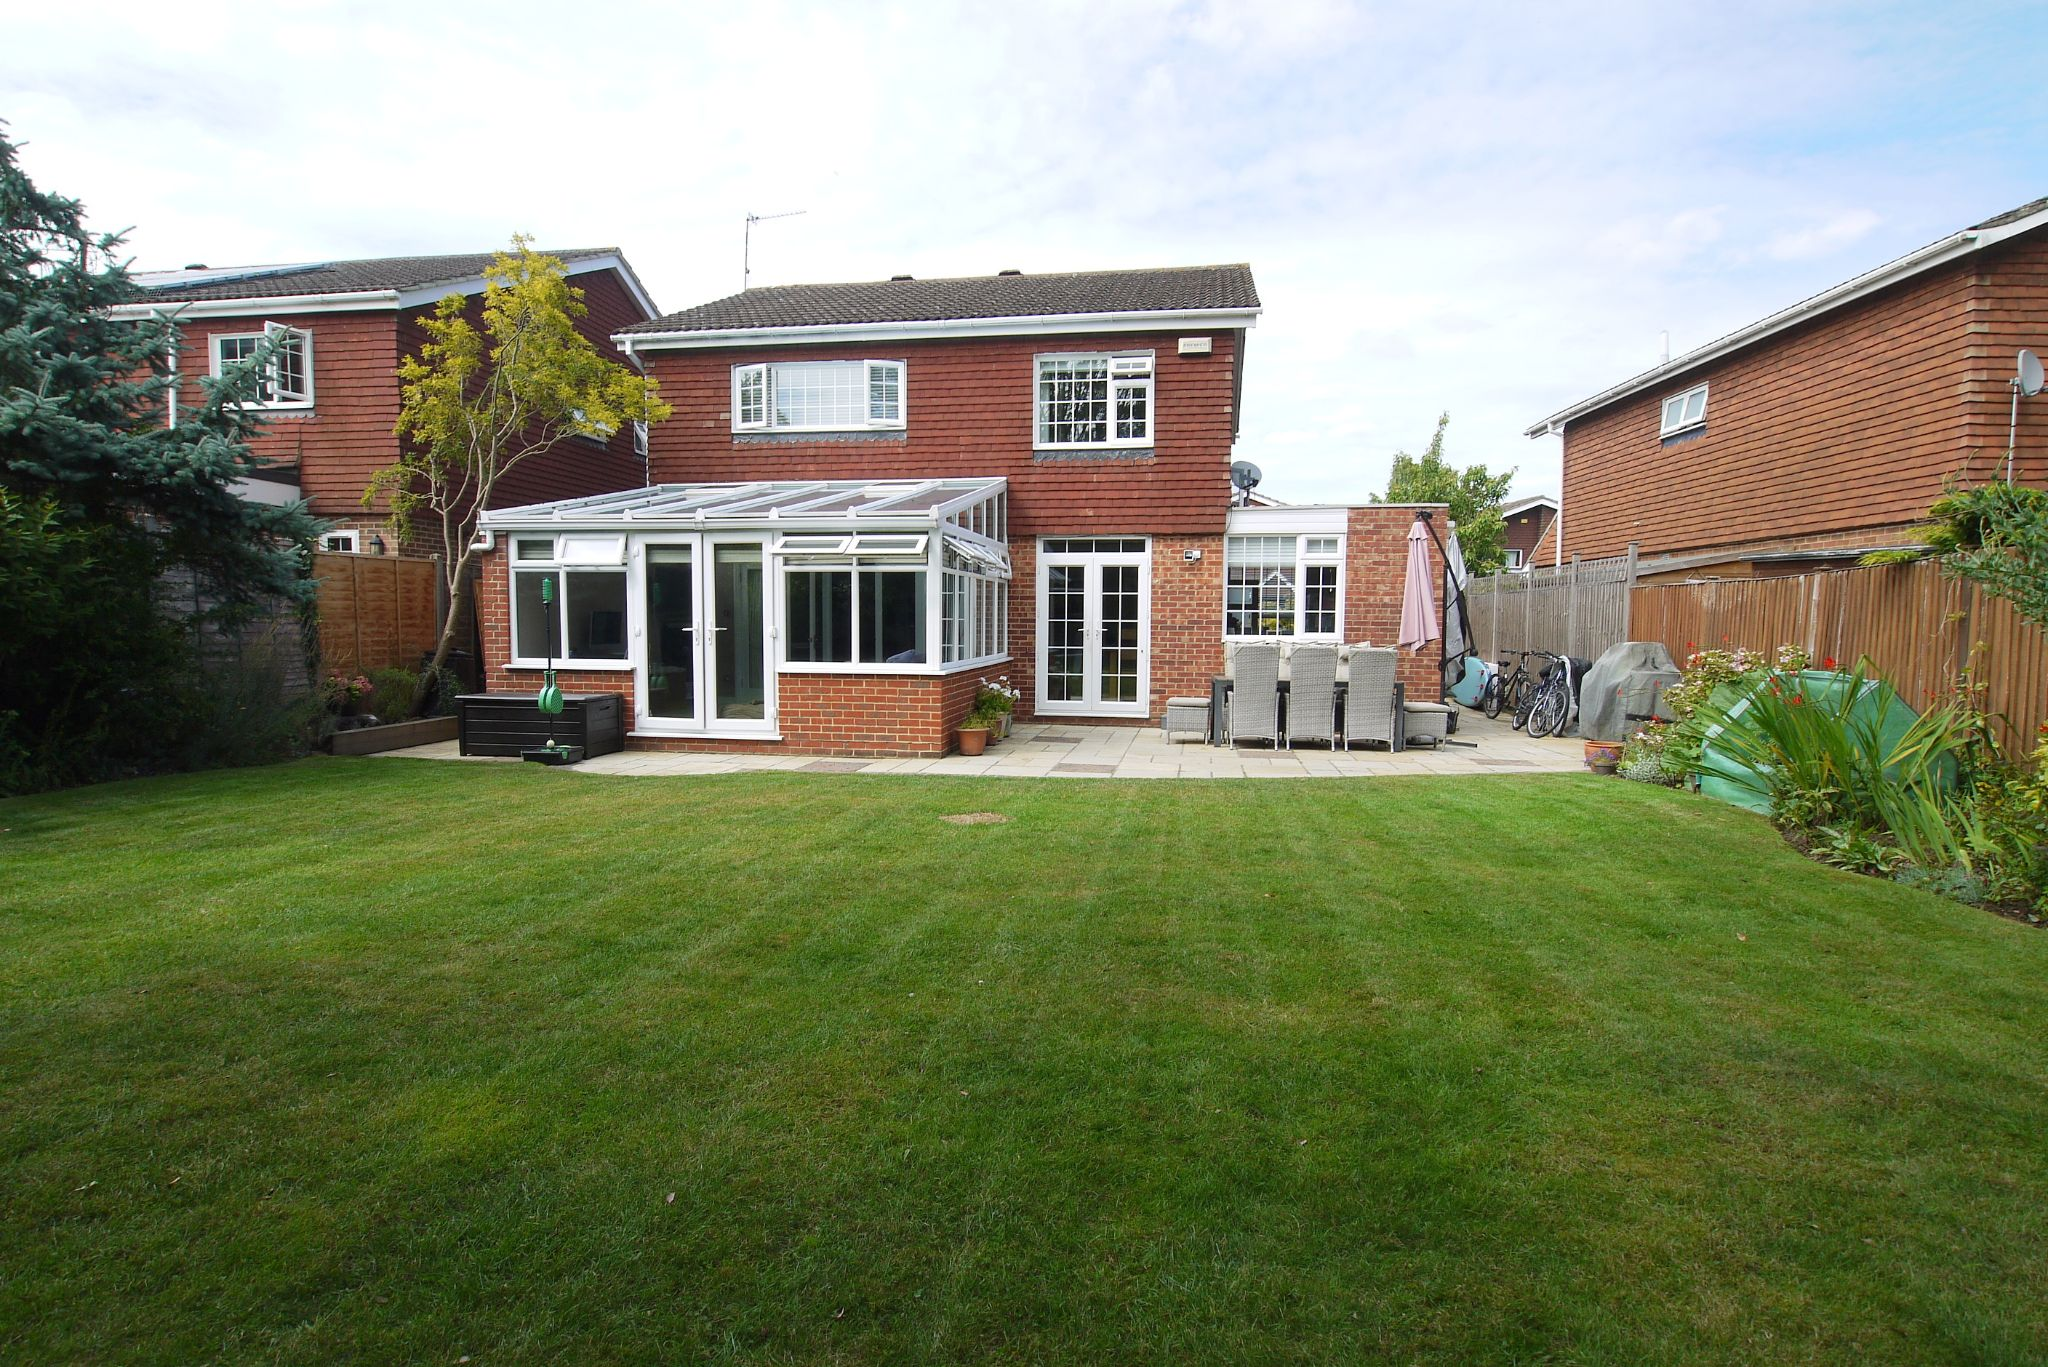 4 bedroom detached house Sold in Sevenoaks - Photograph 17